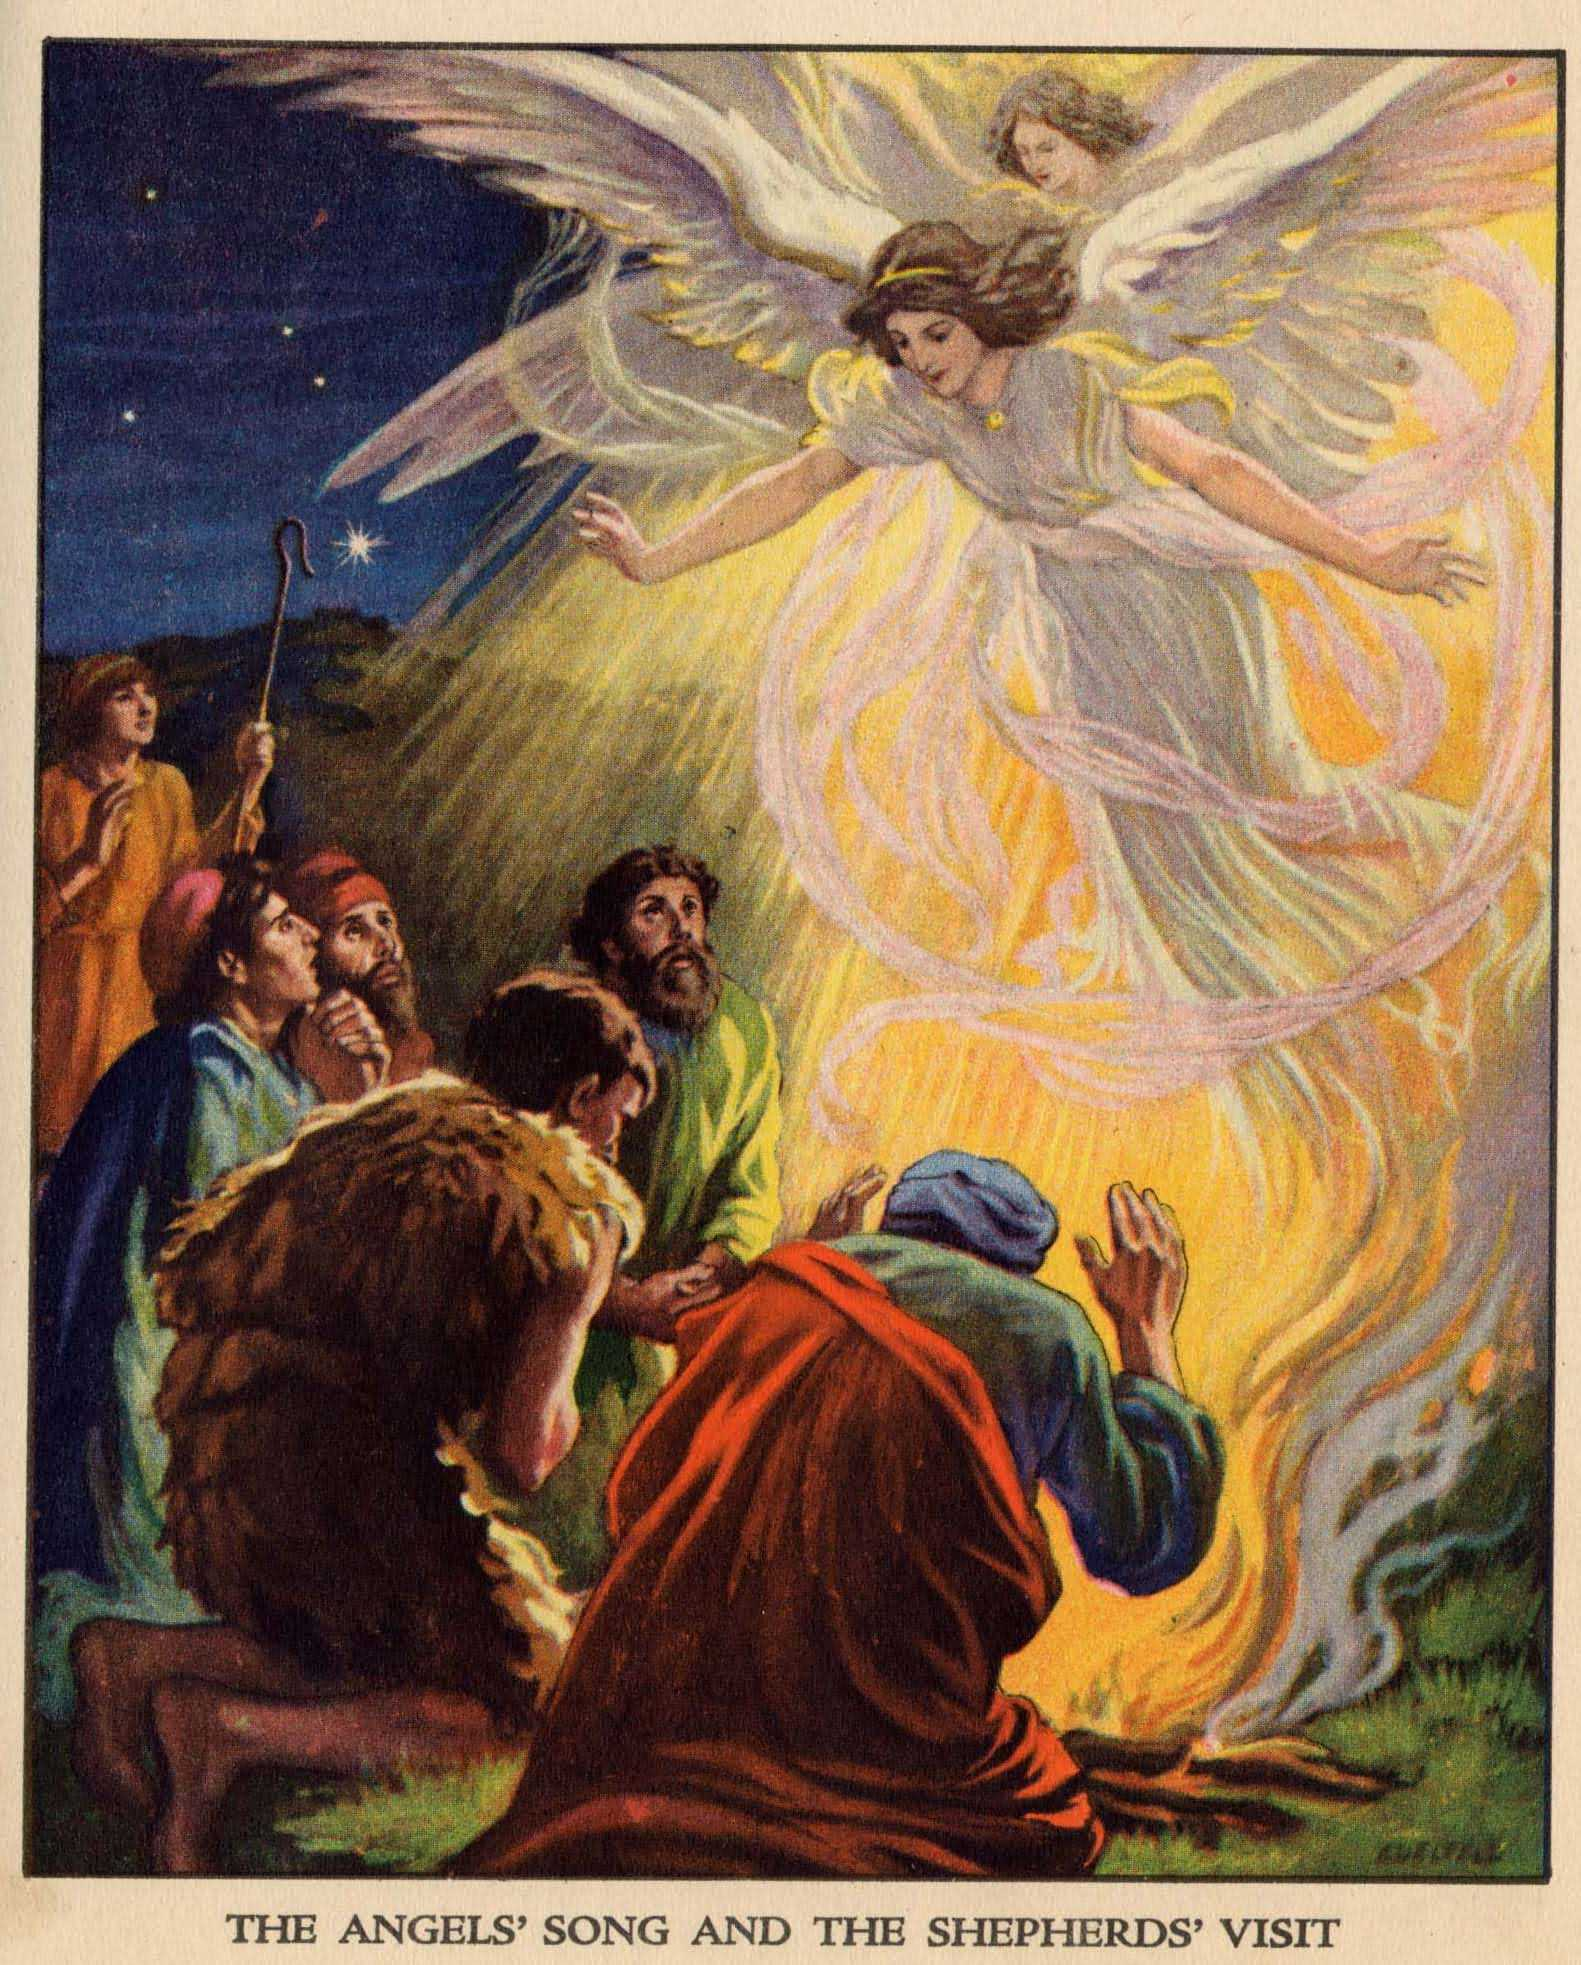 Image of the angels visiting the shepherds